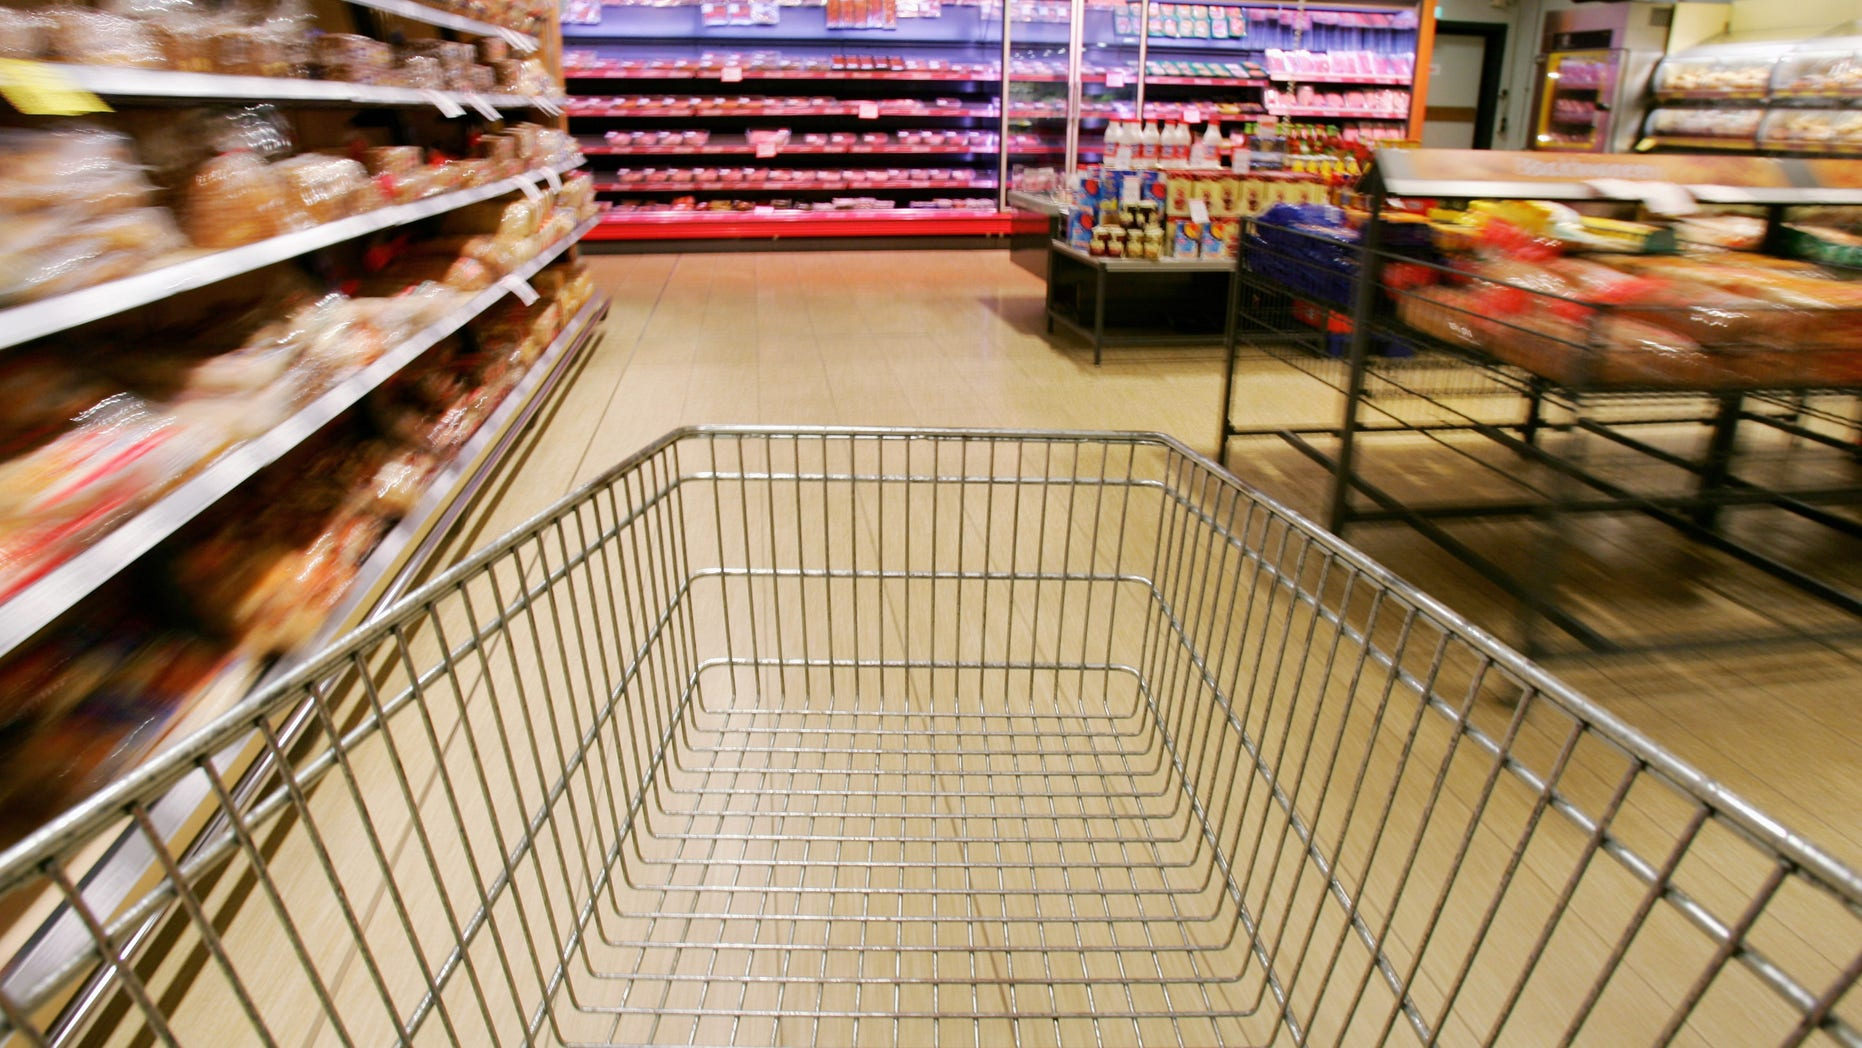 LUNEBURG, GERMANY - JULY 26:  In this photo illustration, a shopping cart rolls down the isles of a supermarket on July 26, 2005 in Luneburg, Germany. Sparked by the election manifesto of the opposition party CDU, Germany currently debates whether raising the Mehrwertsteuer (VAT) would in fact promote economic growth or if it would have the opposite effect by hurting families and low-income households.  (Photo by Andreas Rentz/Getty Images)